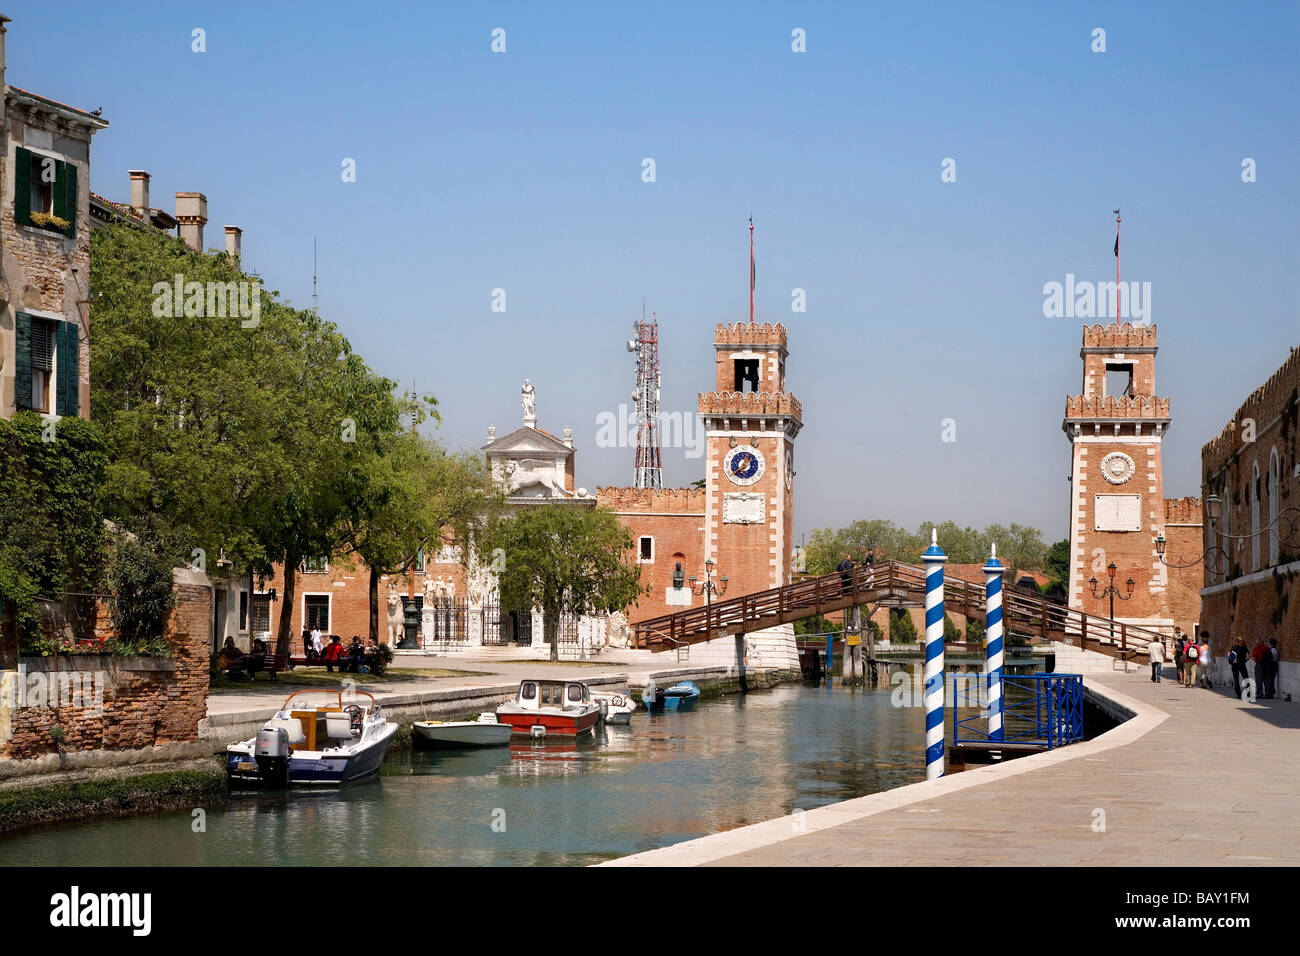 Entrance Tower, Arsenale, Venetian Arsenal, Venice, Veneto, Italy - Stock Image